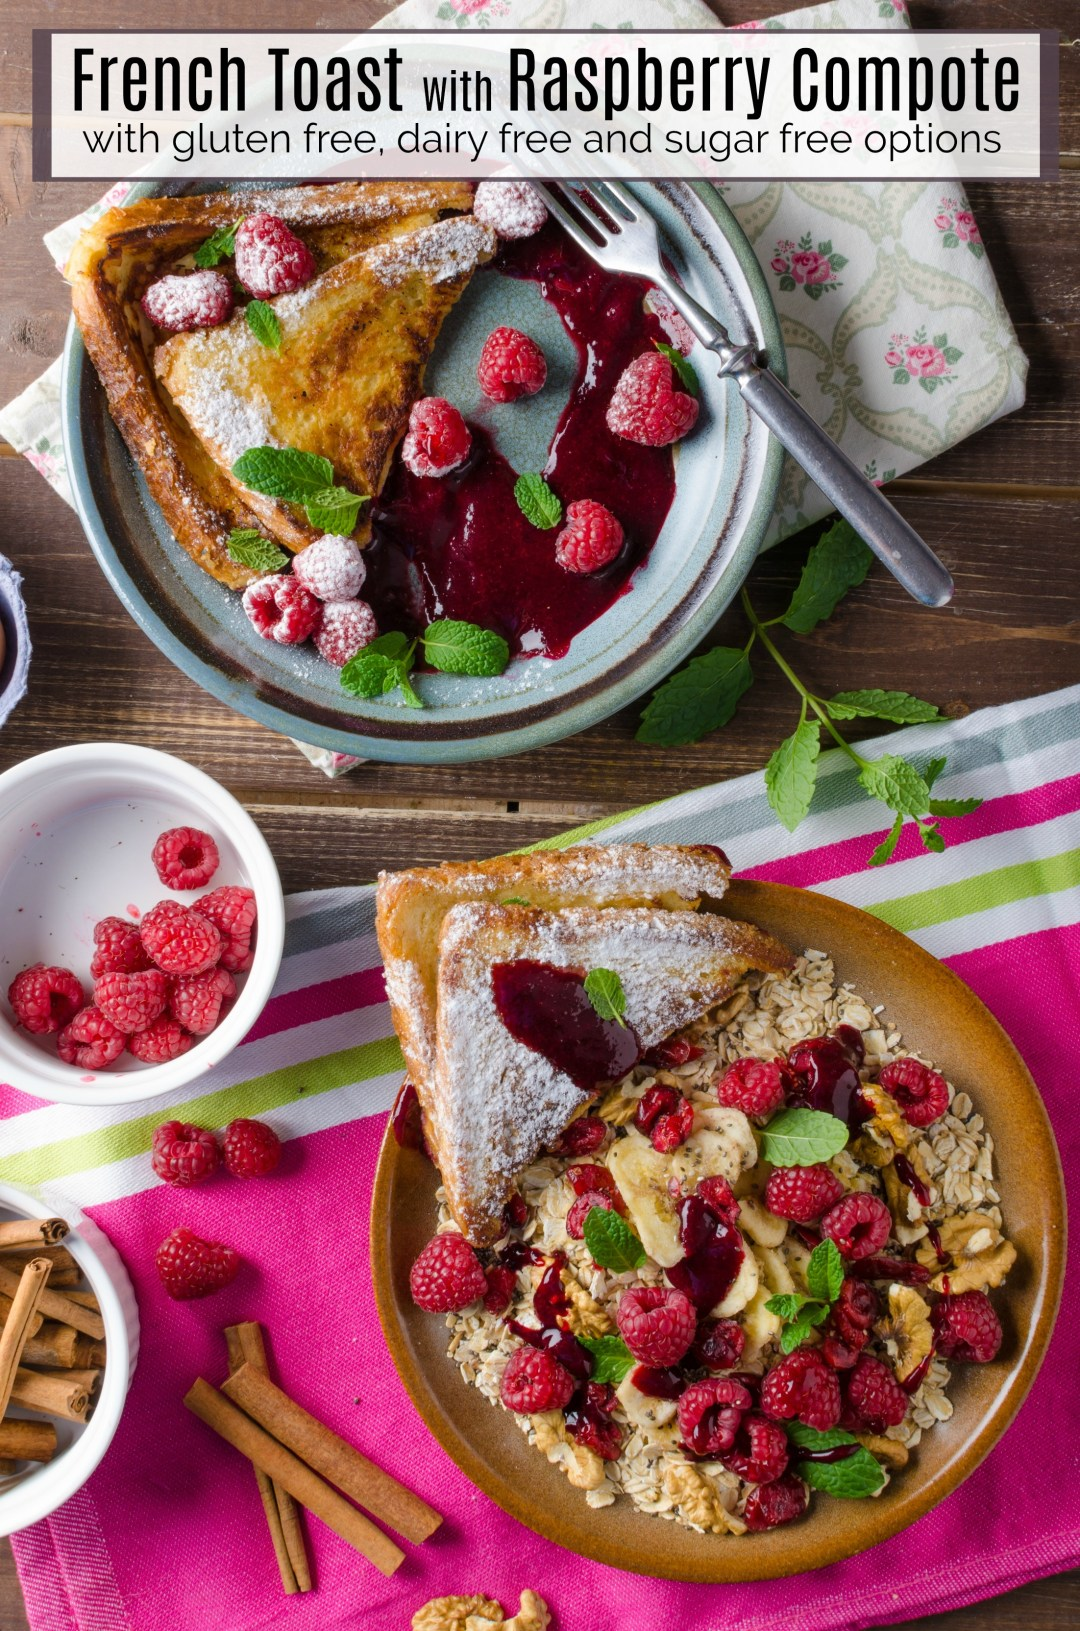 French Toast with Raspberry Compote #frenchtoast #raspberrycompote #glutenfree #dairyfree